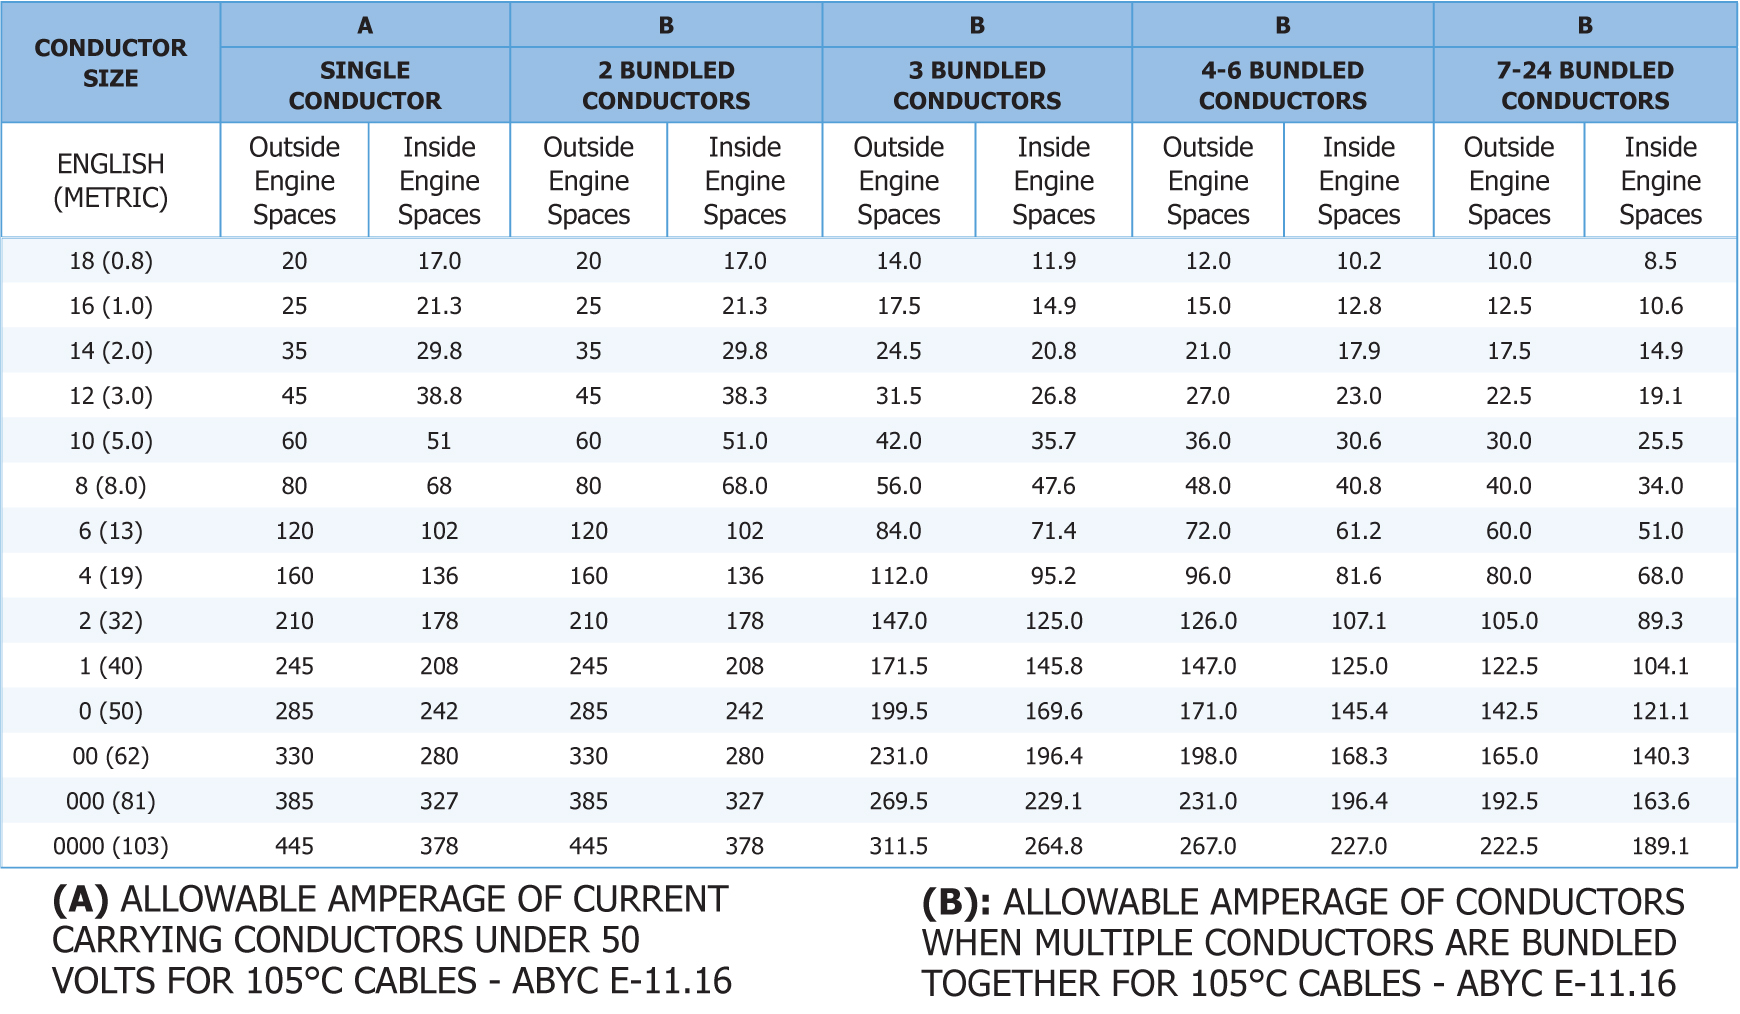 allowable-amperage-of-conductors-table.jpg